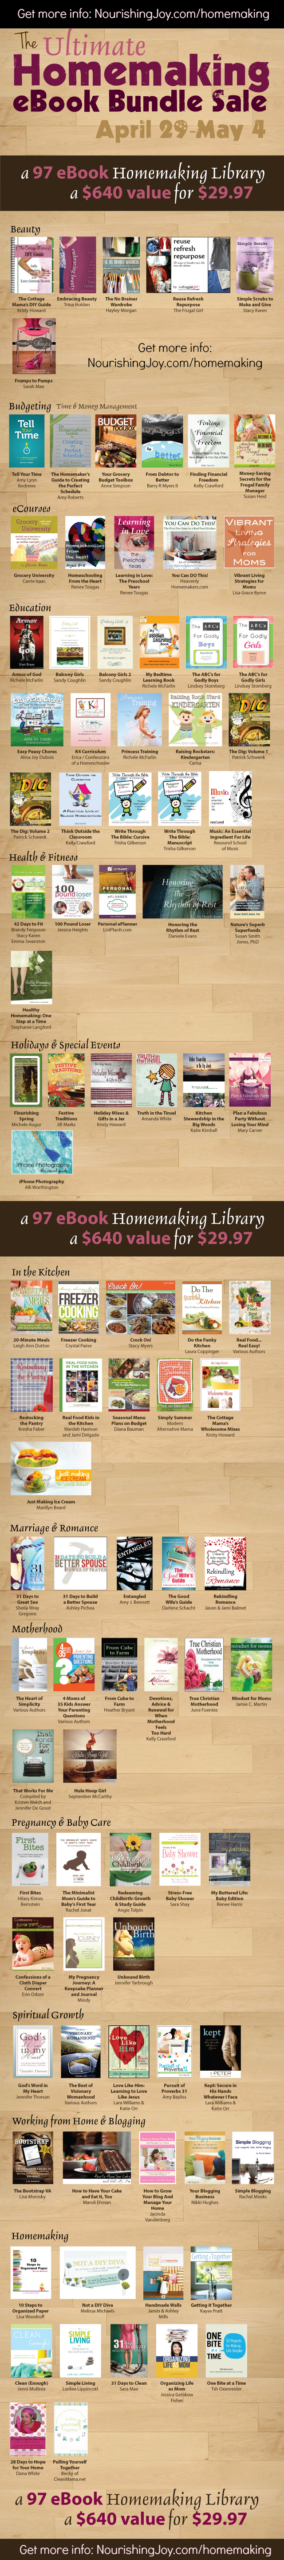 Get 97 (!) e-books for only $29.97with The Ultimate Homemaking E-Book Bundle. The value is incredible and these books can be stored in your own library or can be given as gifts to friends. Plus, it would make a perfect Mother's Day gift!